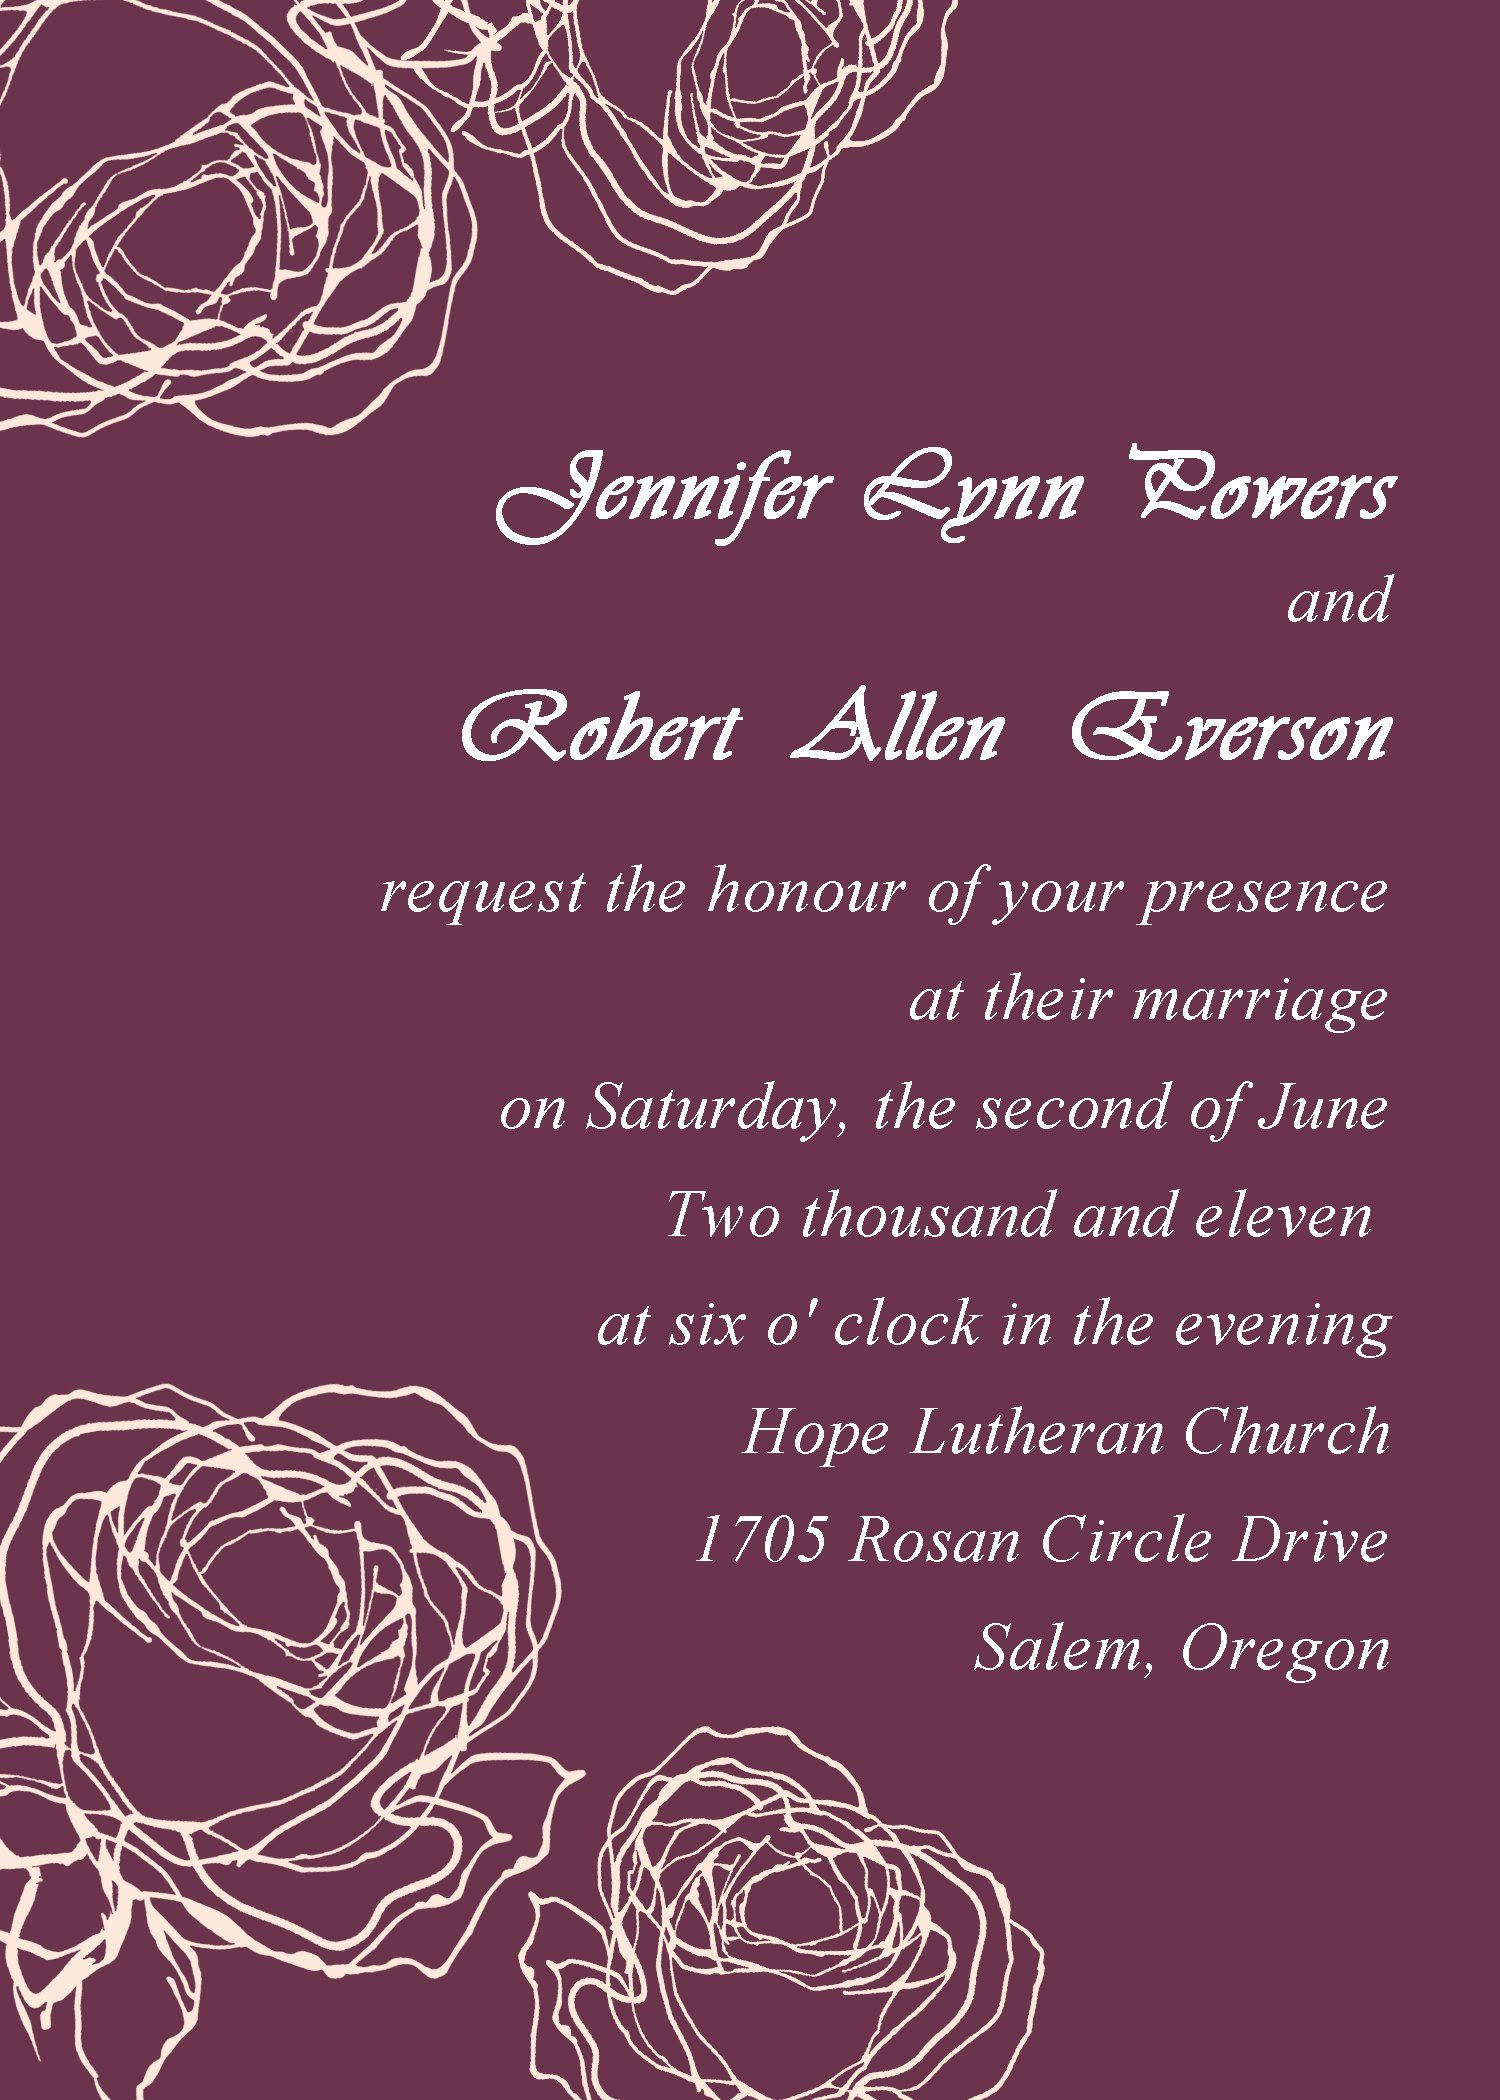 Marriage Invitation Cards Free Download